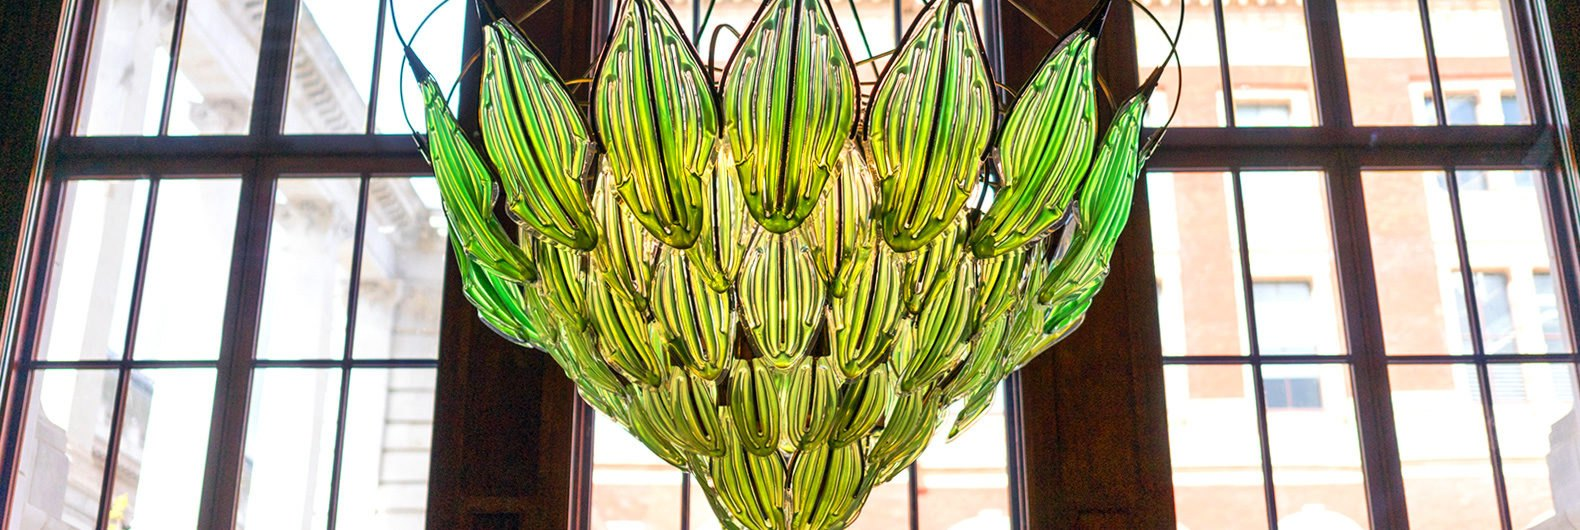 Extraordinary living chandelier with algae filled leaves purifies extraordinary living chandelier with algae filled leaves purifies the air aloadofball Images